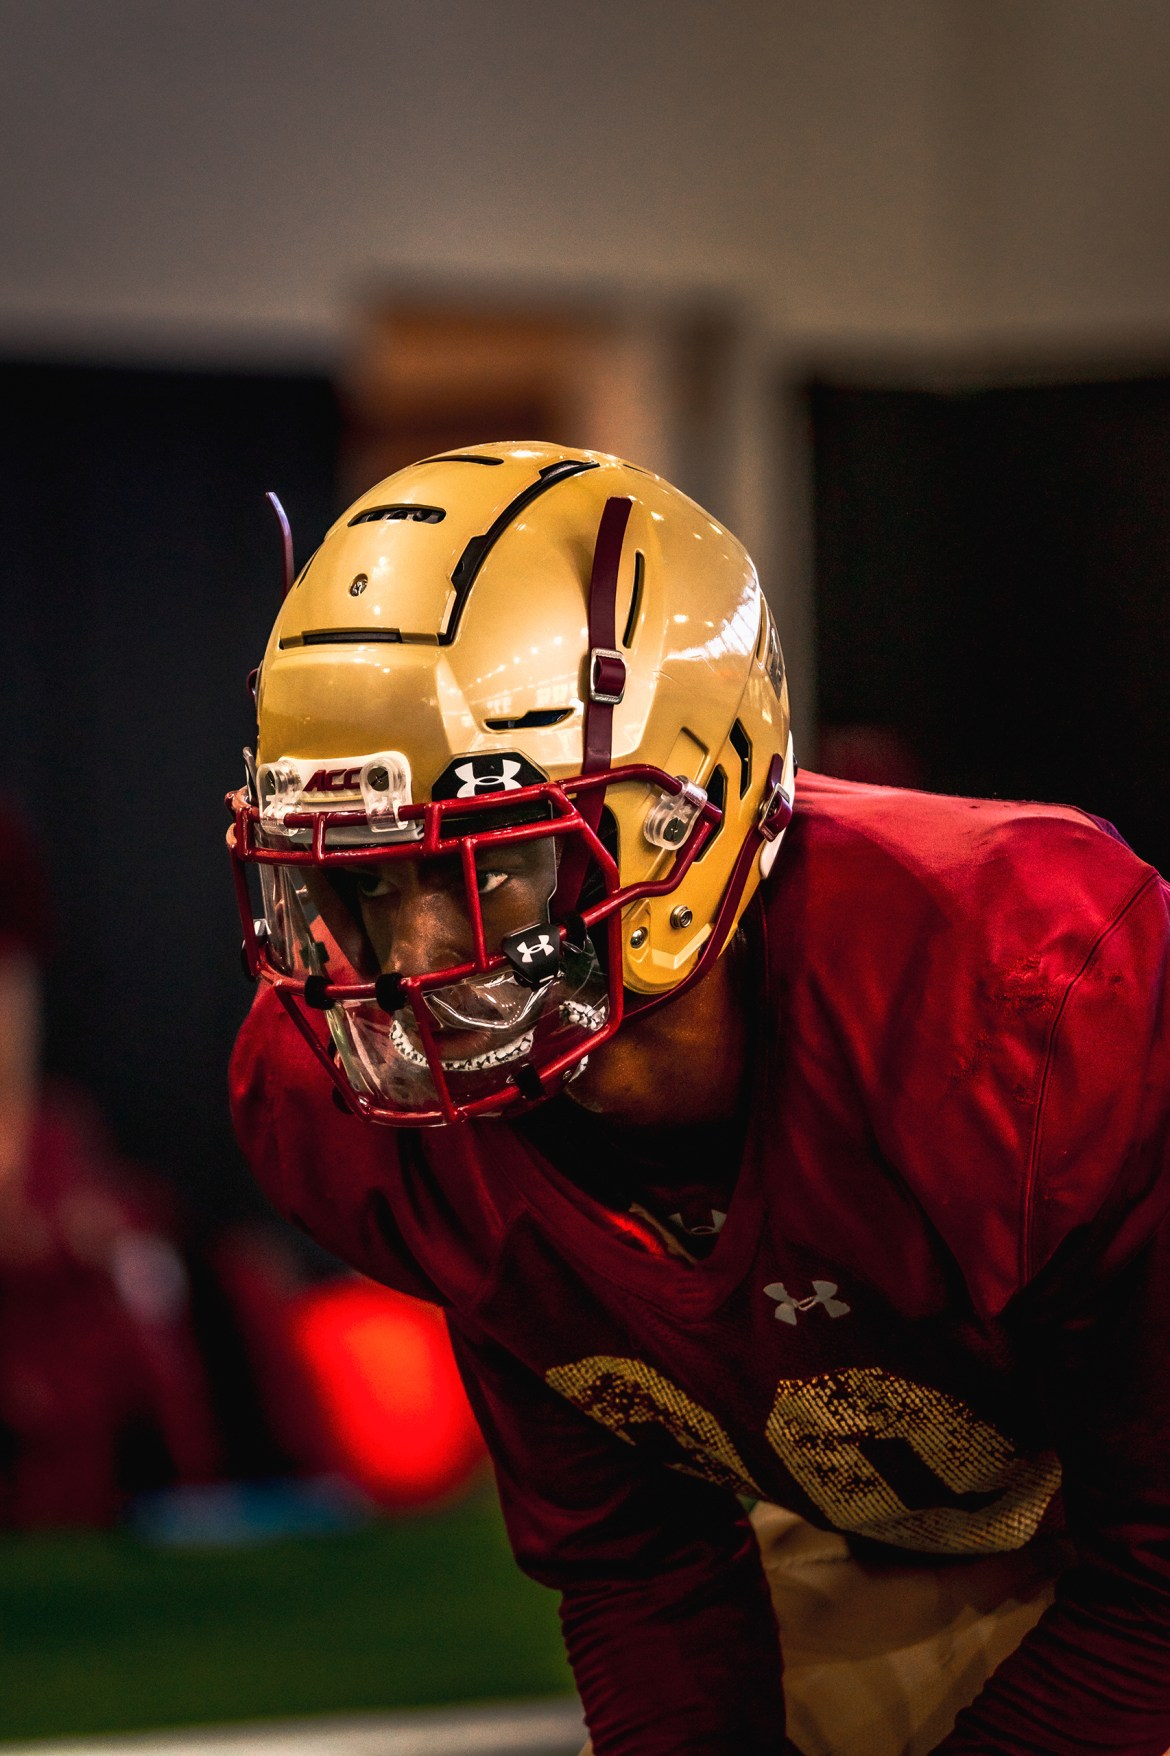 BC Football: Preseason Blog #12 LIVELY PRACTICE